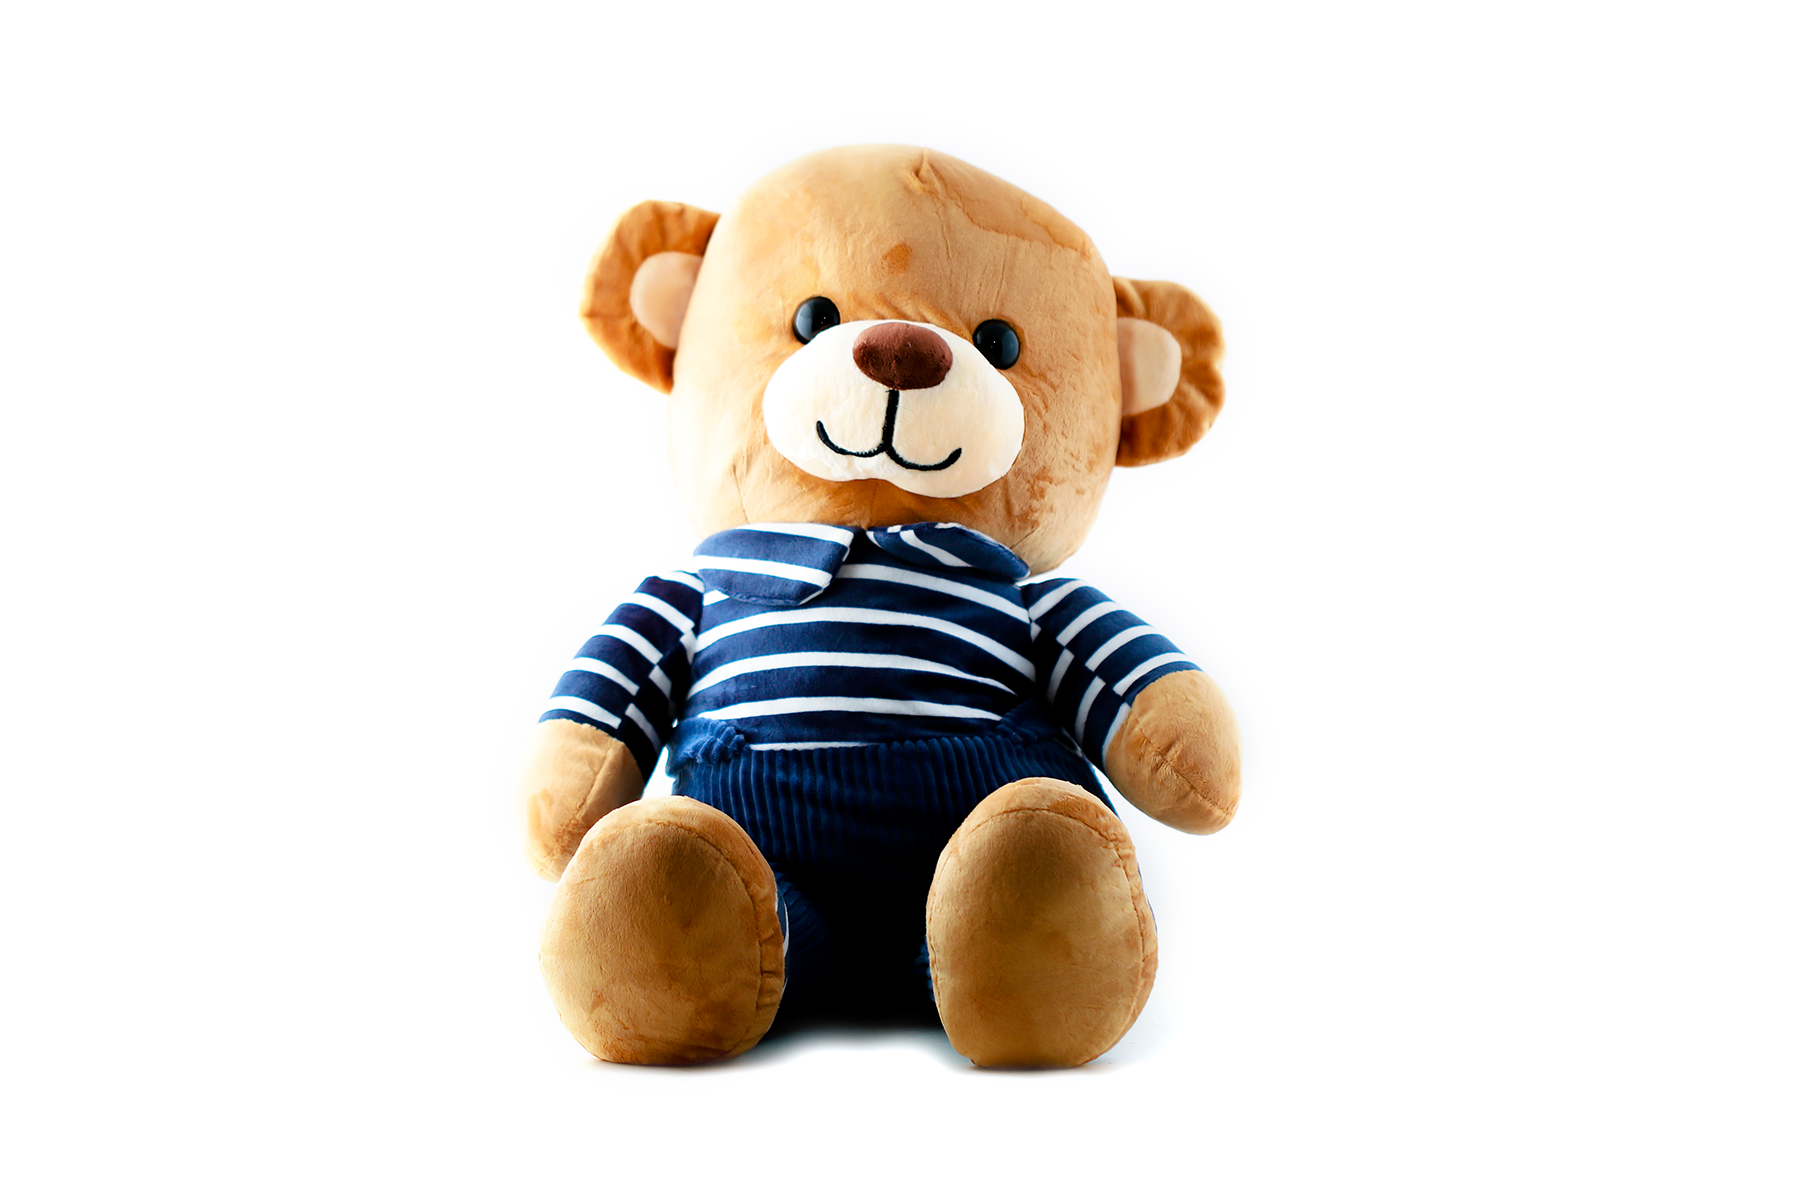 Adorable Teddy Bear Toy Store Lk